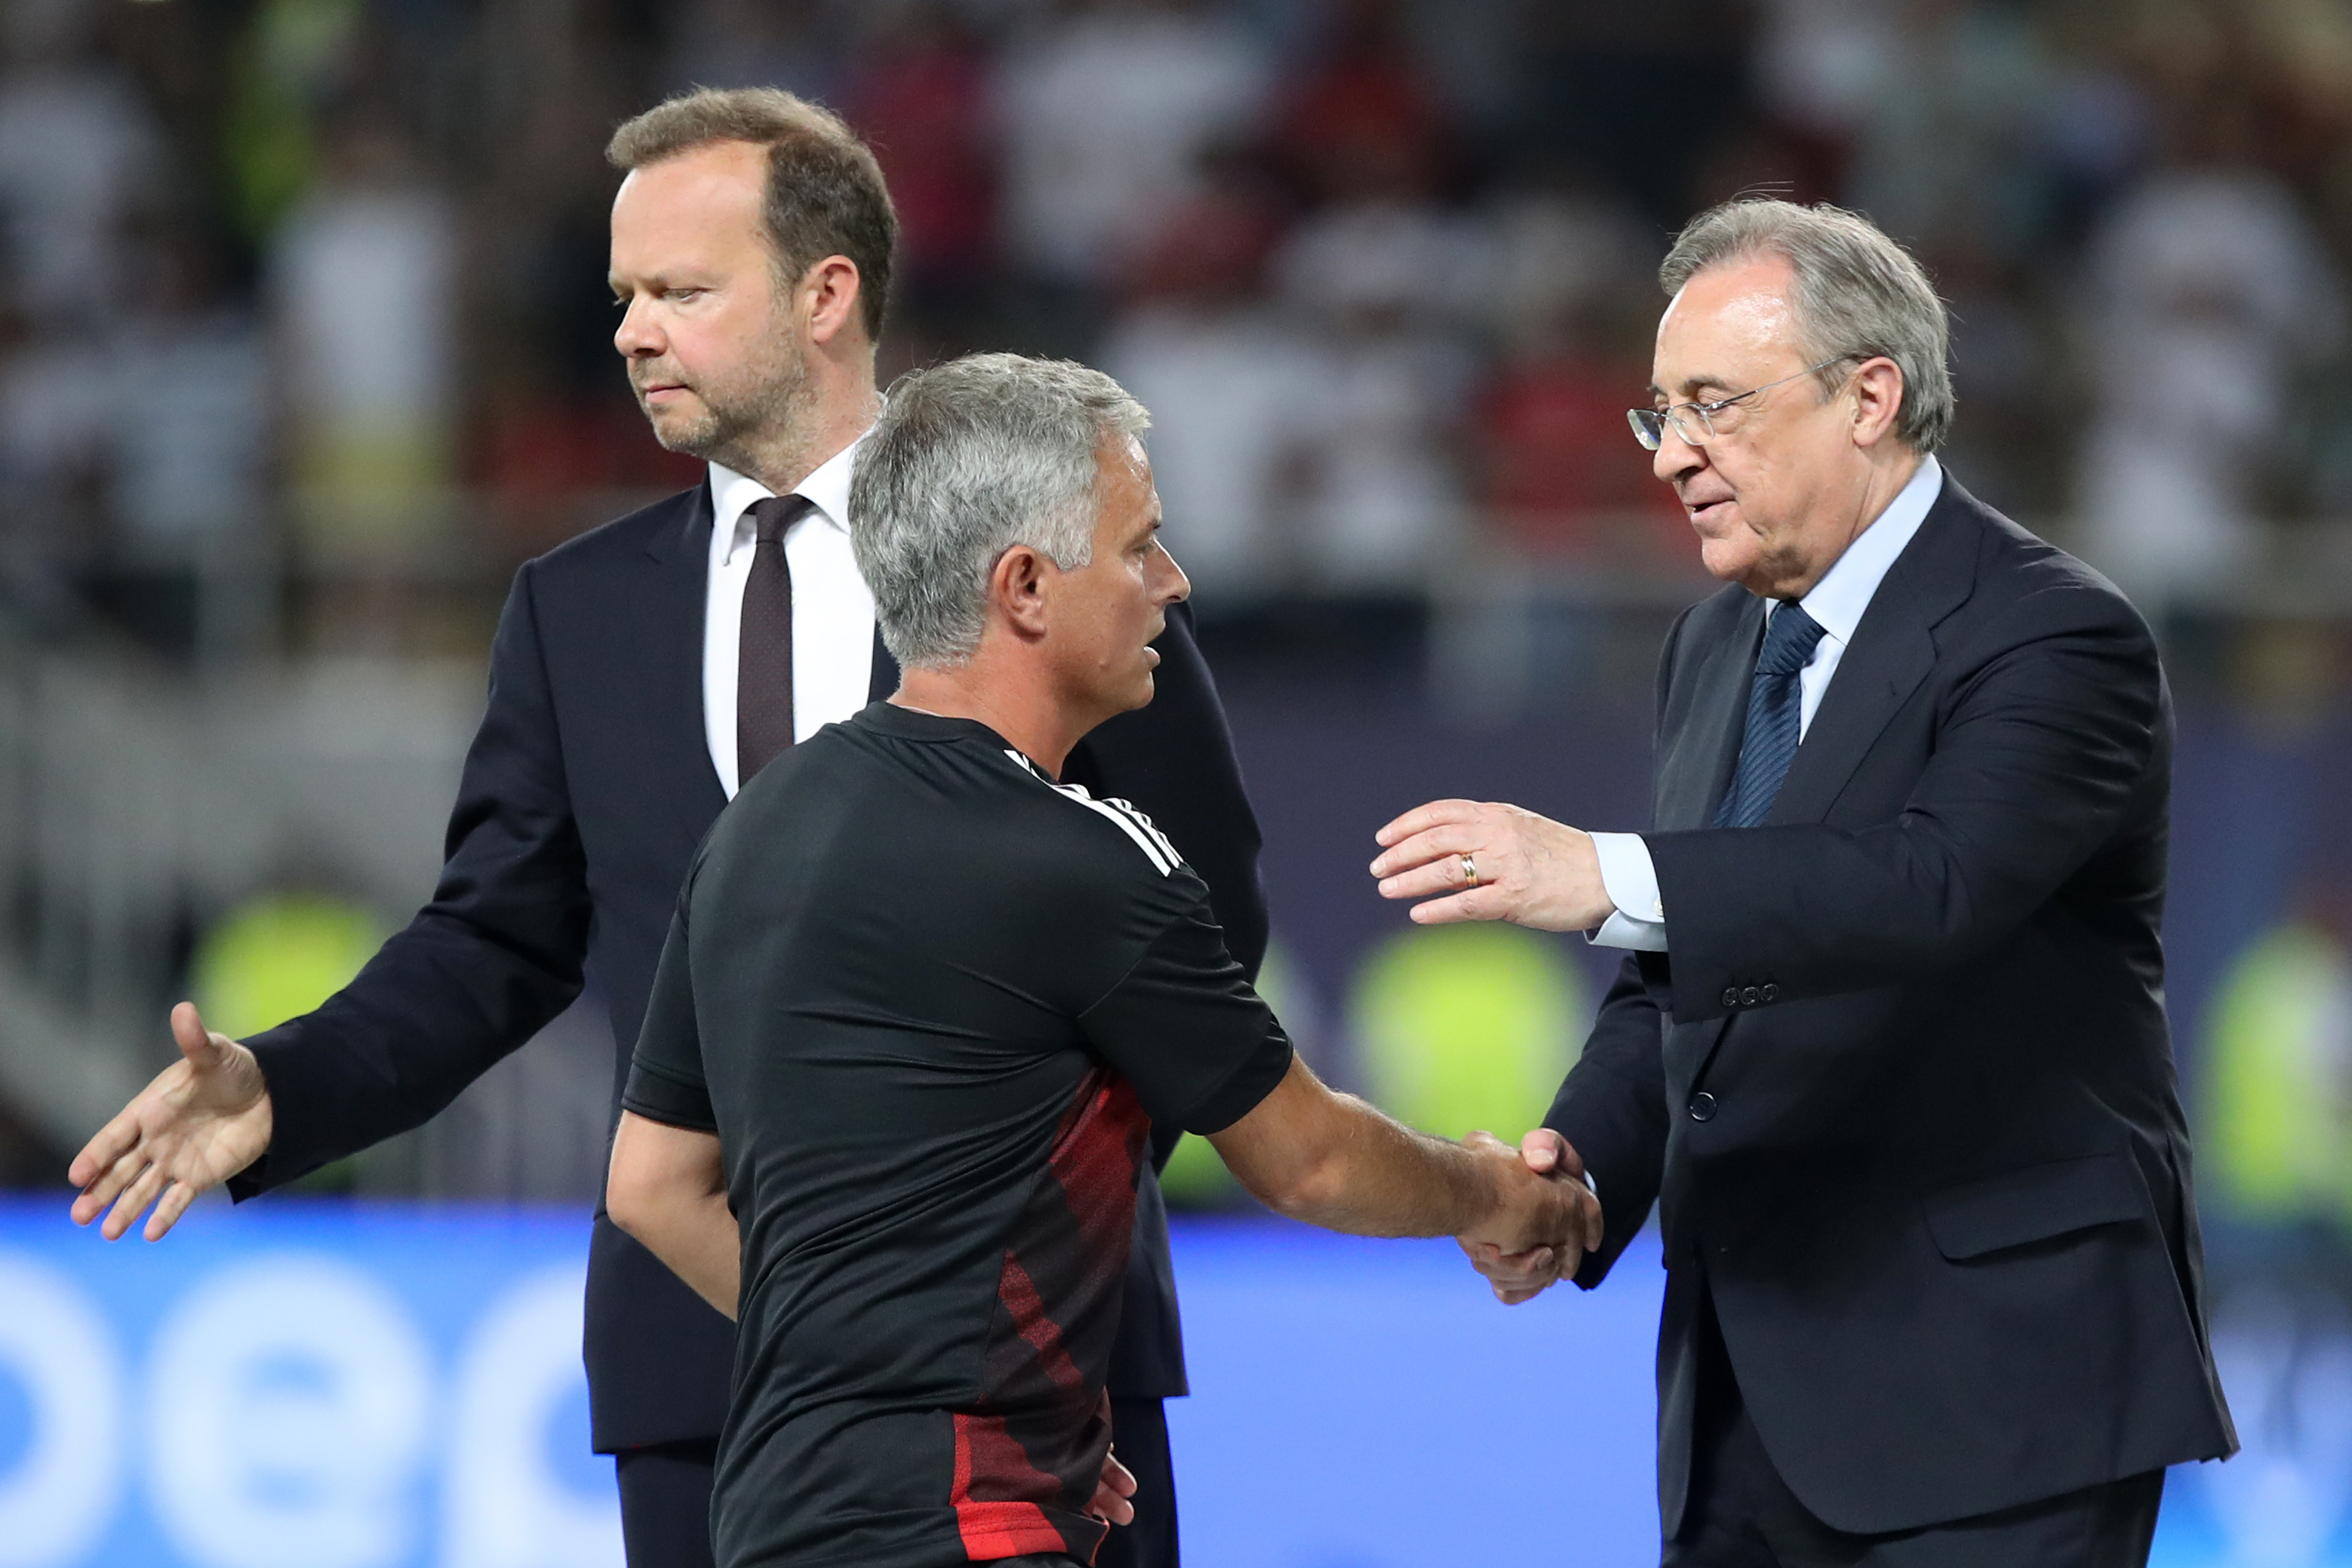 Mourinho has a good relationship with Perez. Image: PA Images